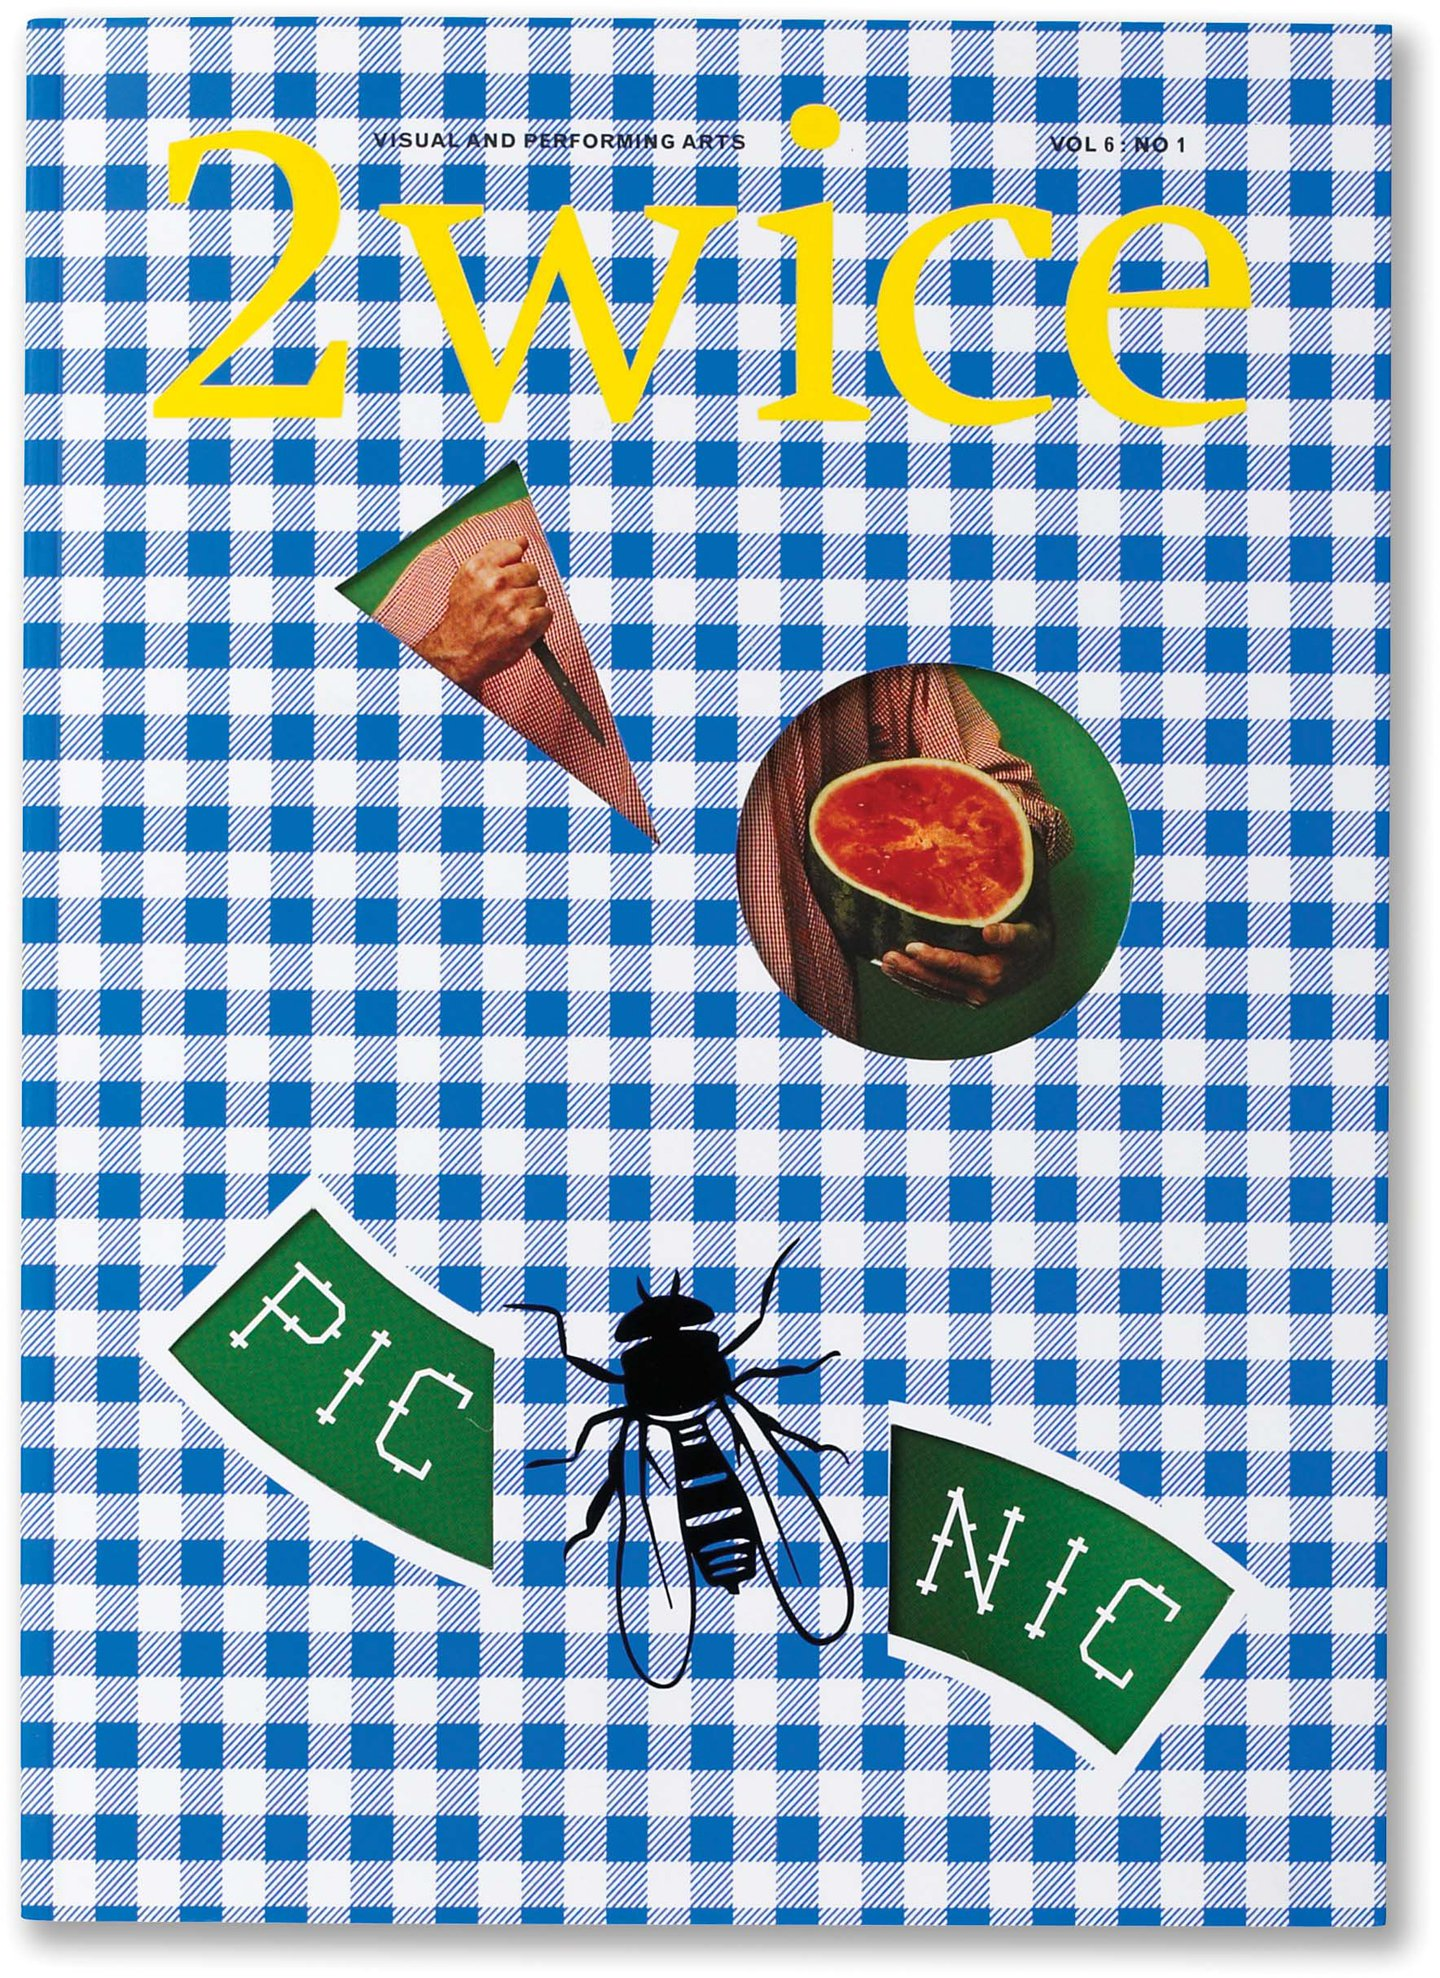 Exploring the treasure trove that is 2wice's online visual archive by Pentagram's Abbott Miller